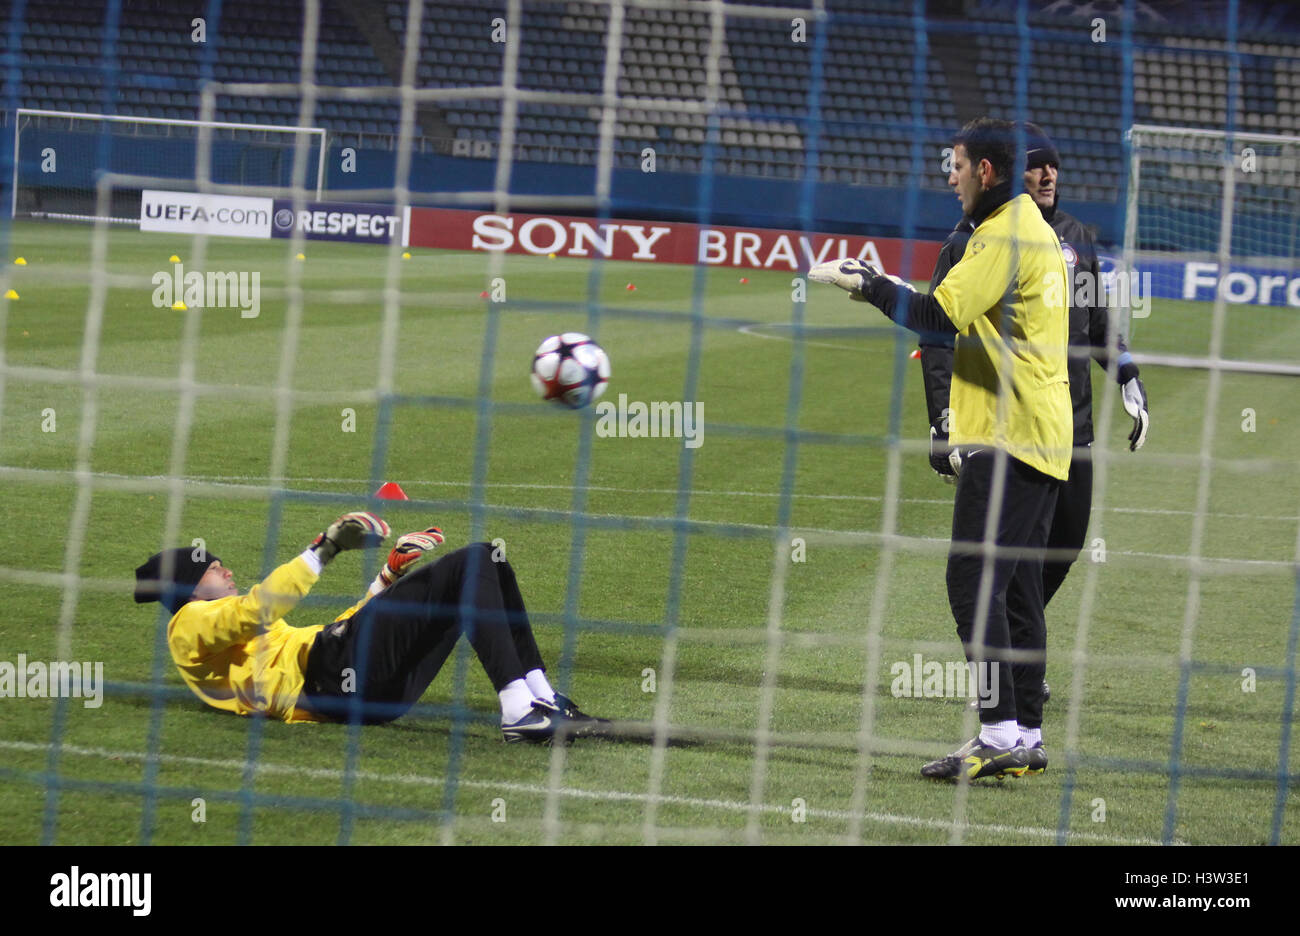 KYIV, UKRAINE - NOVEMBER 3: Goalkeepers of Inter Milan throw-over a ball during training session in Kyiv on November - Stock Image